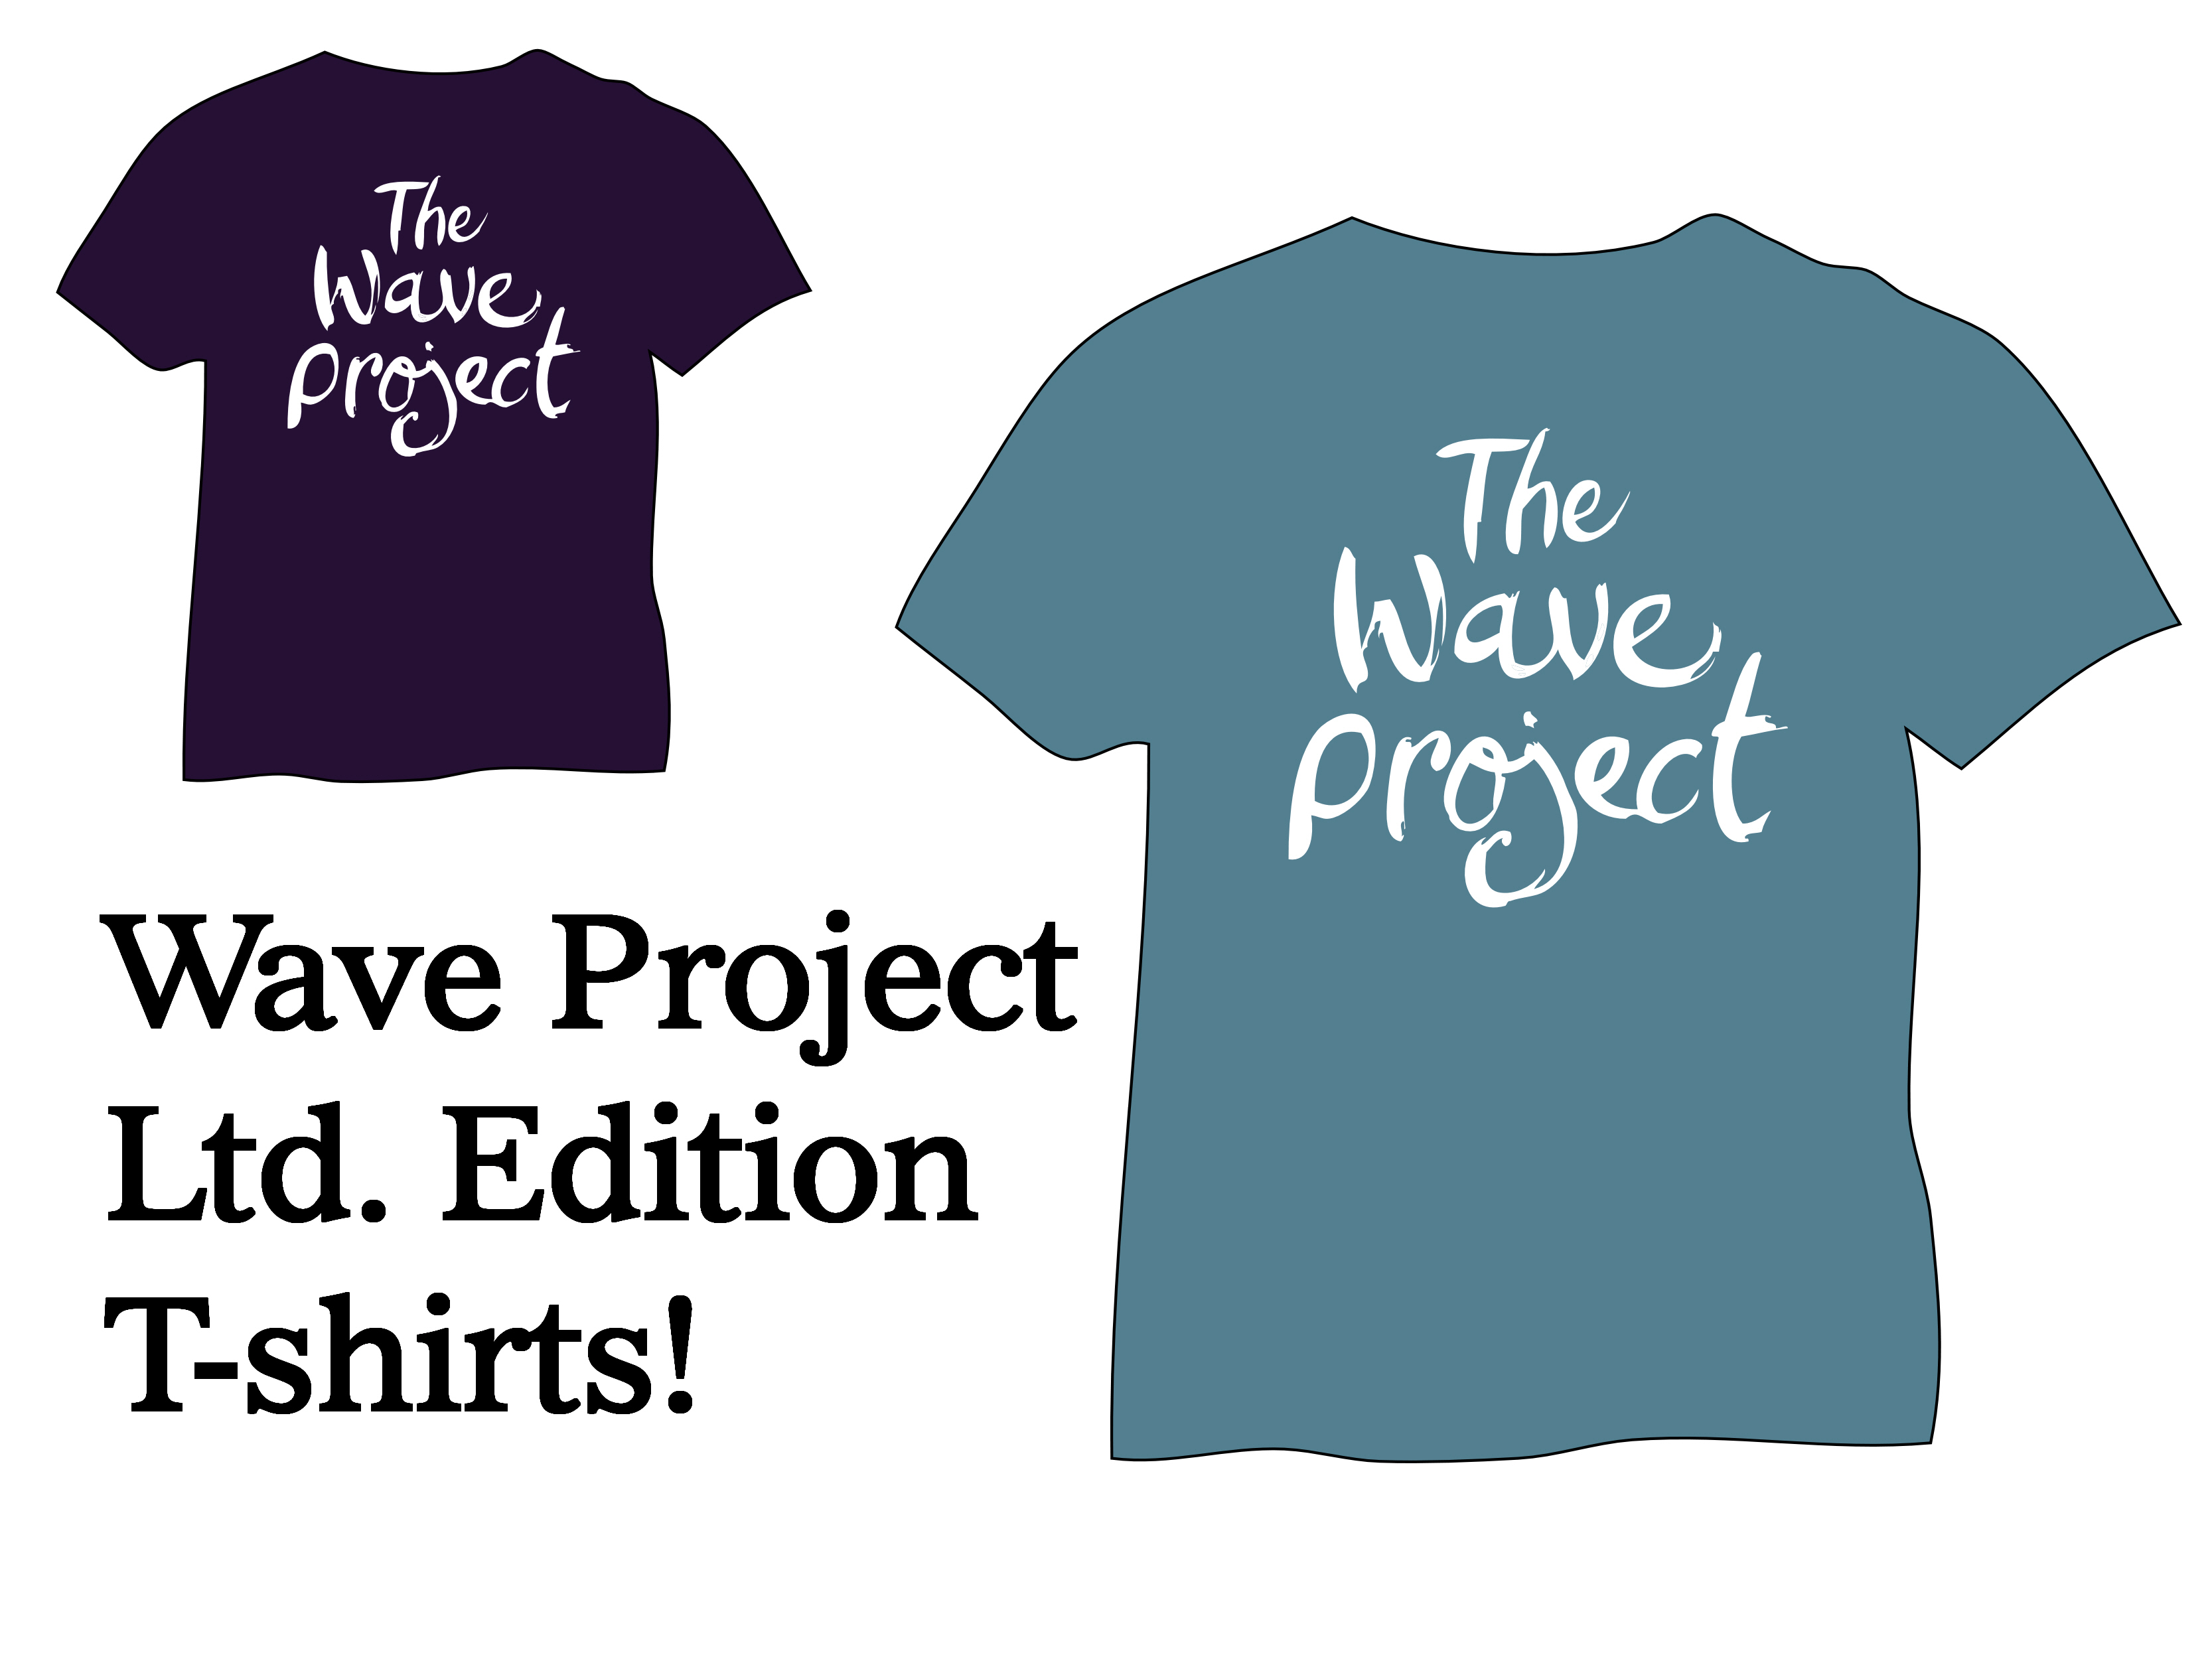 Wave Project ltd. edition tees!